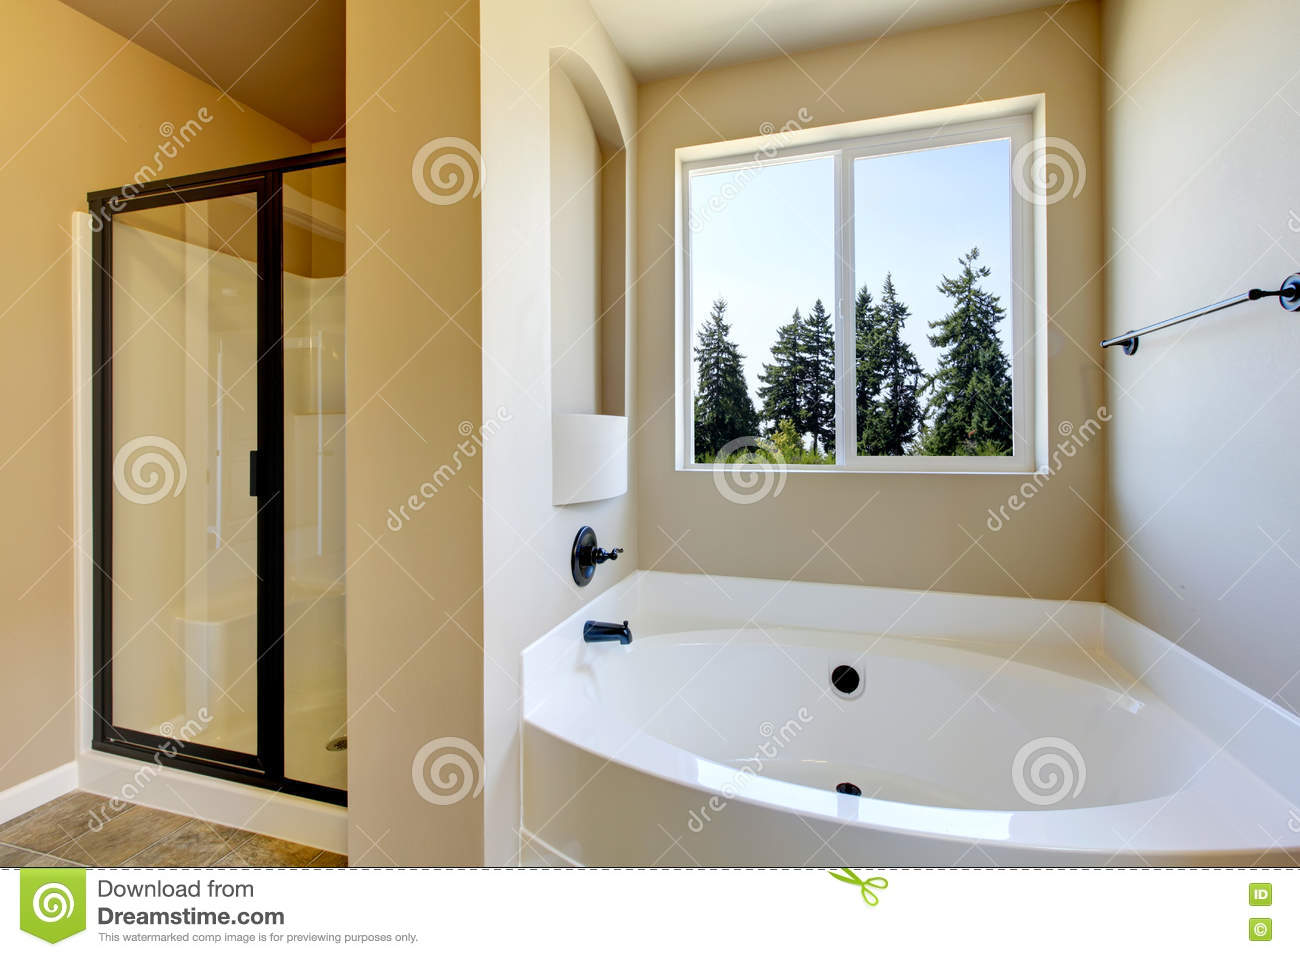 Beige Bathroom Interior With White Bath Tub And Glass Shower Stock ...